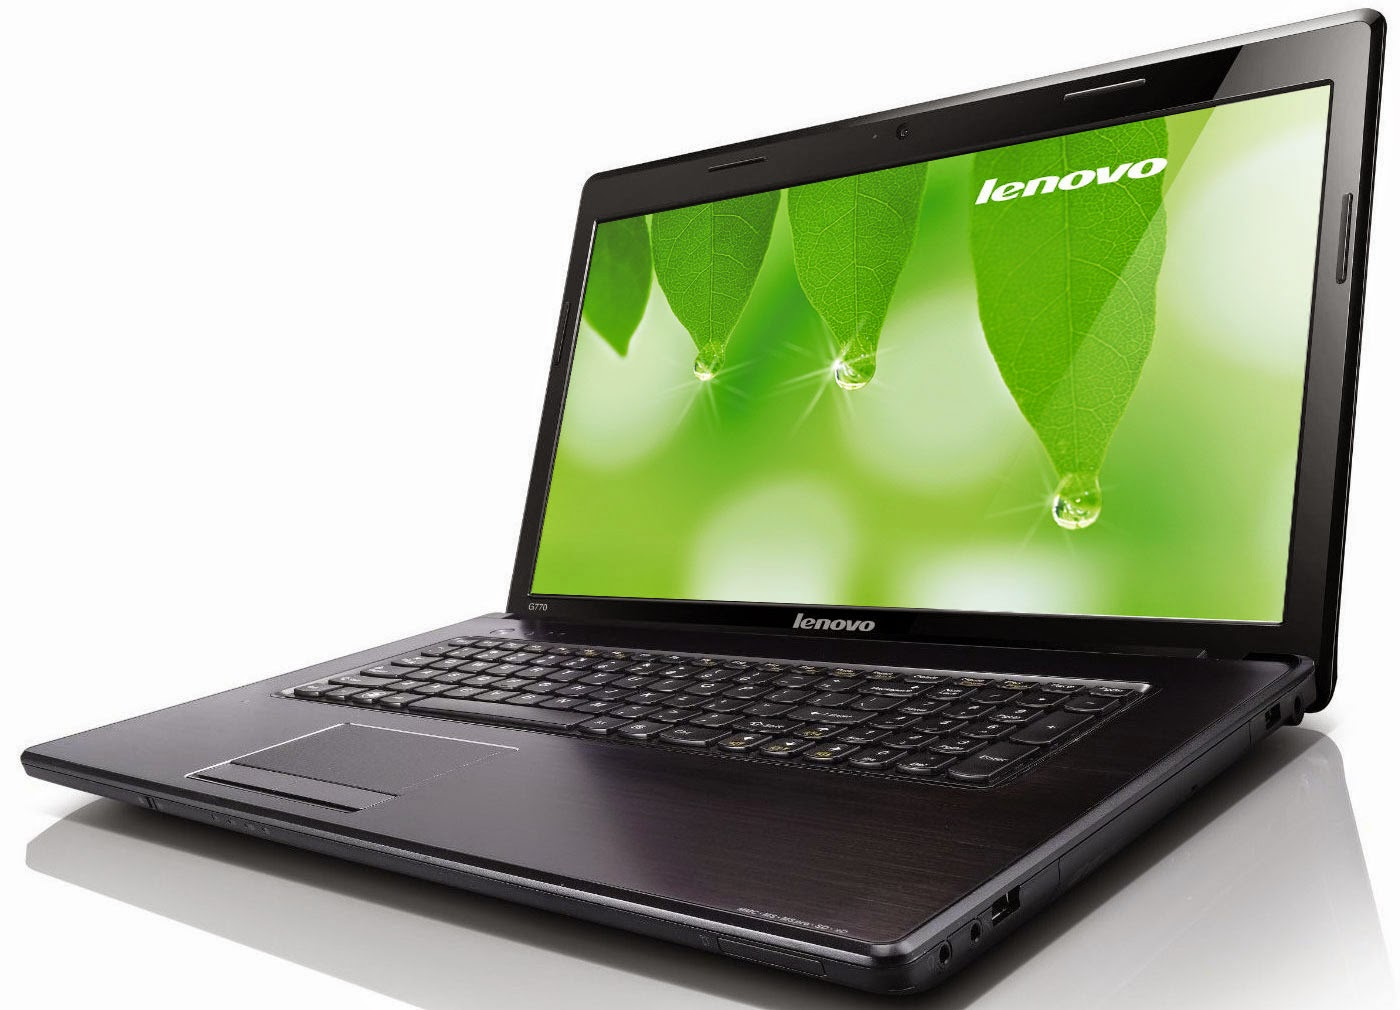 Lenovo g580 wifi drivers download | download wireless driver for.